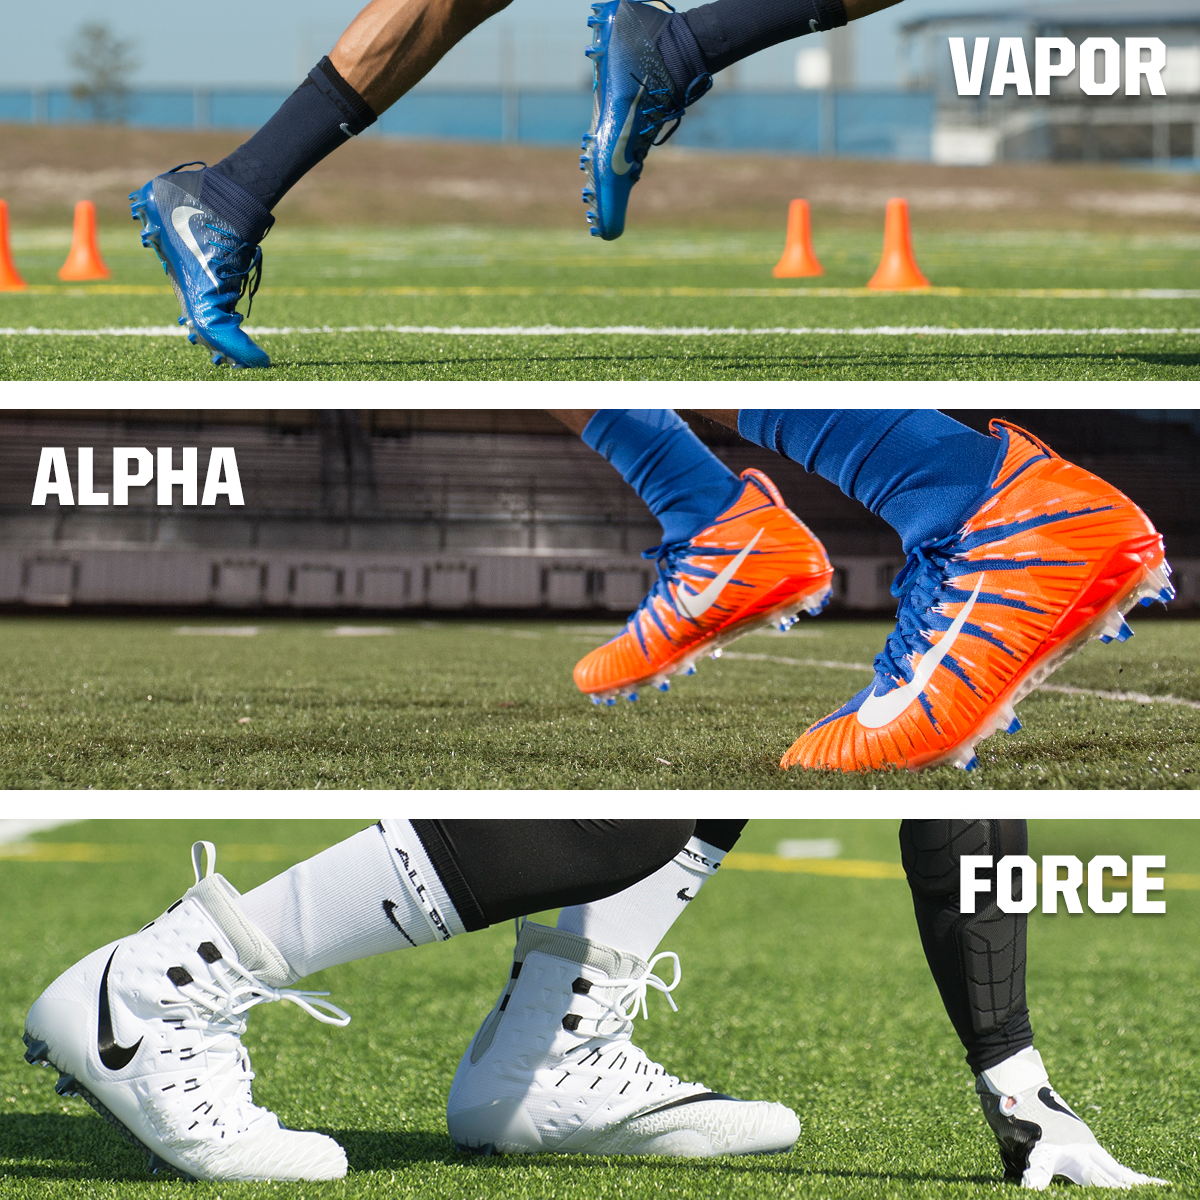 Nike Football Cleats: Will You Lace Up Like Odell, Russ, or Khalil?